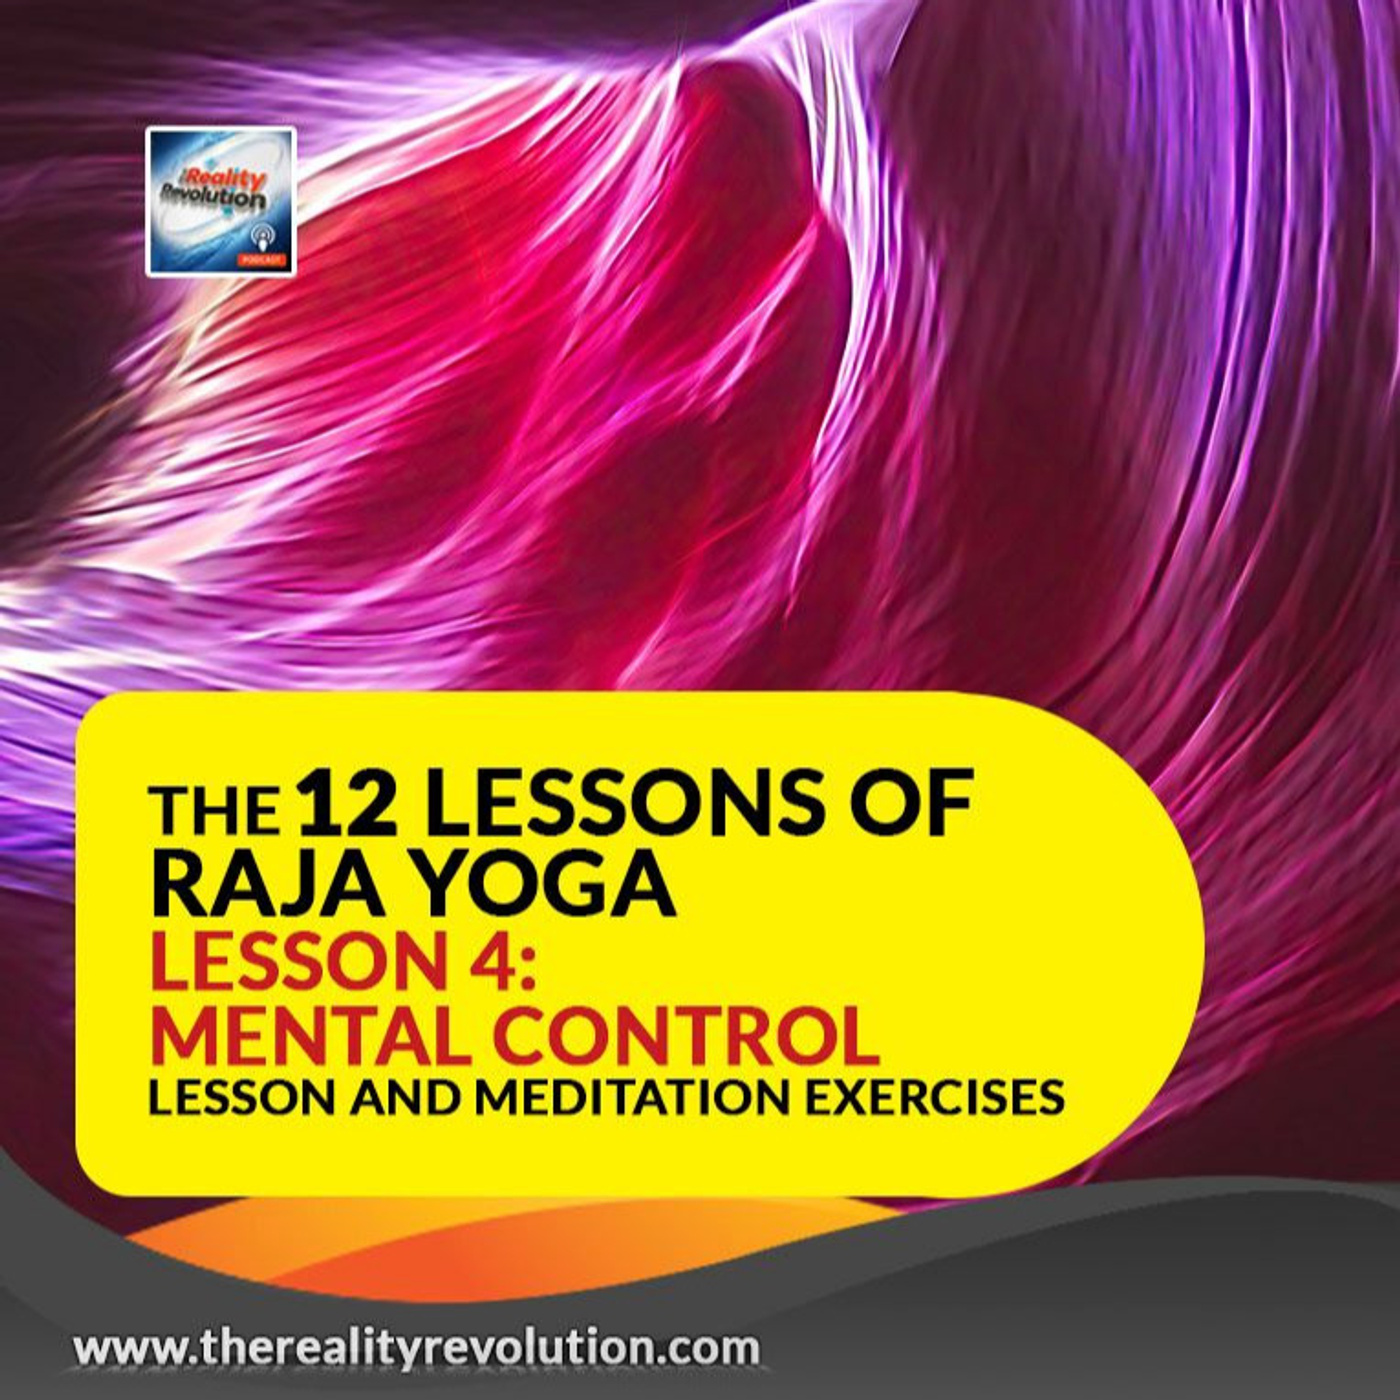 The 12 Lessons Of Raja Yoga Lesson 4 Mental Control Lessons And Meditation Exercises The Reality Revolution Podcast Lyssna Har Poddtoppen Se